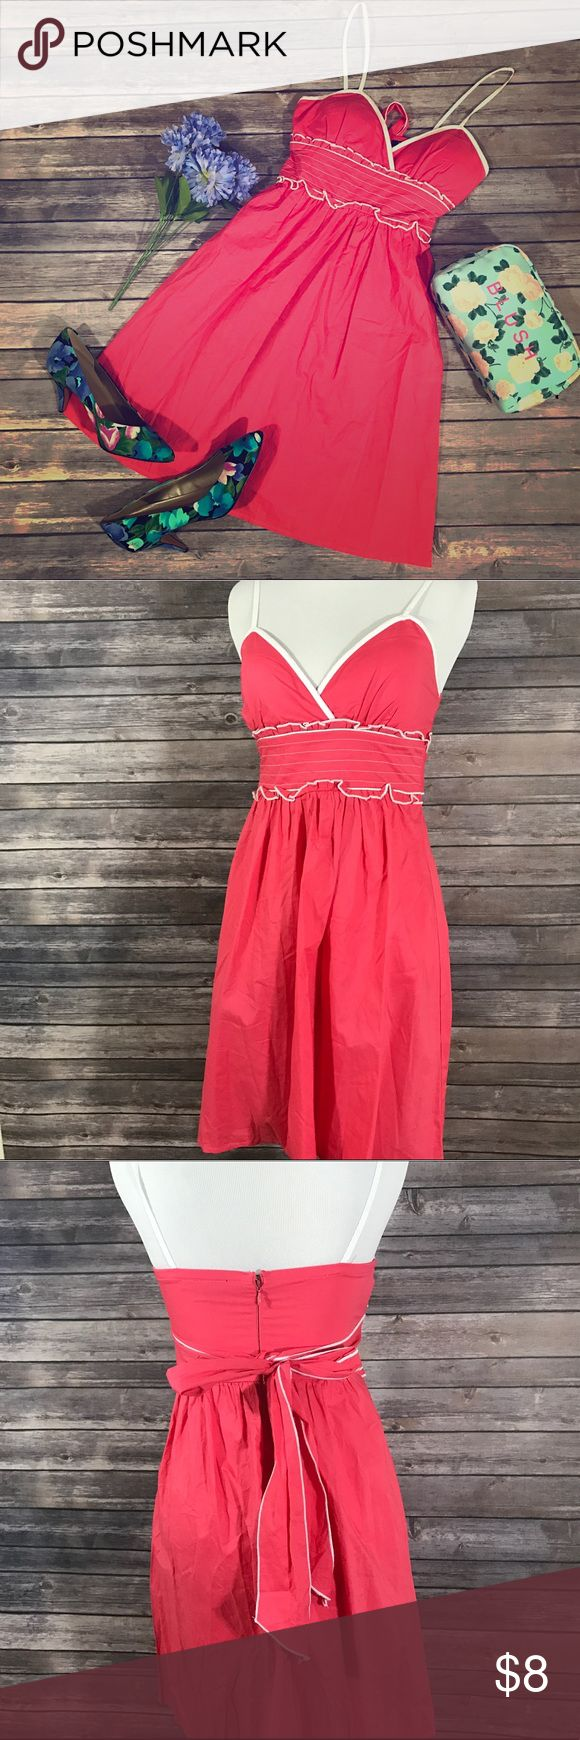 Bright pink sundress Lightly padded bright pink sundress with a cute tie back. No holes or stains in good condition. Dresses Mini